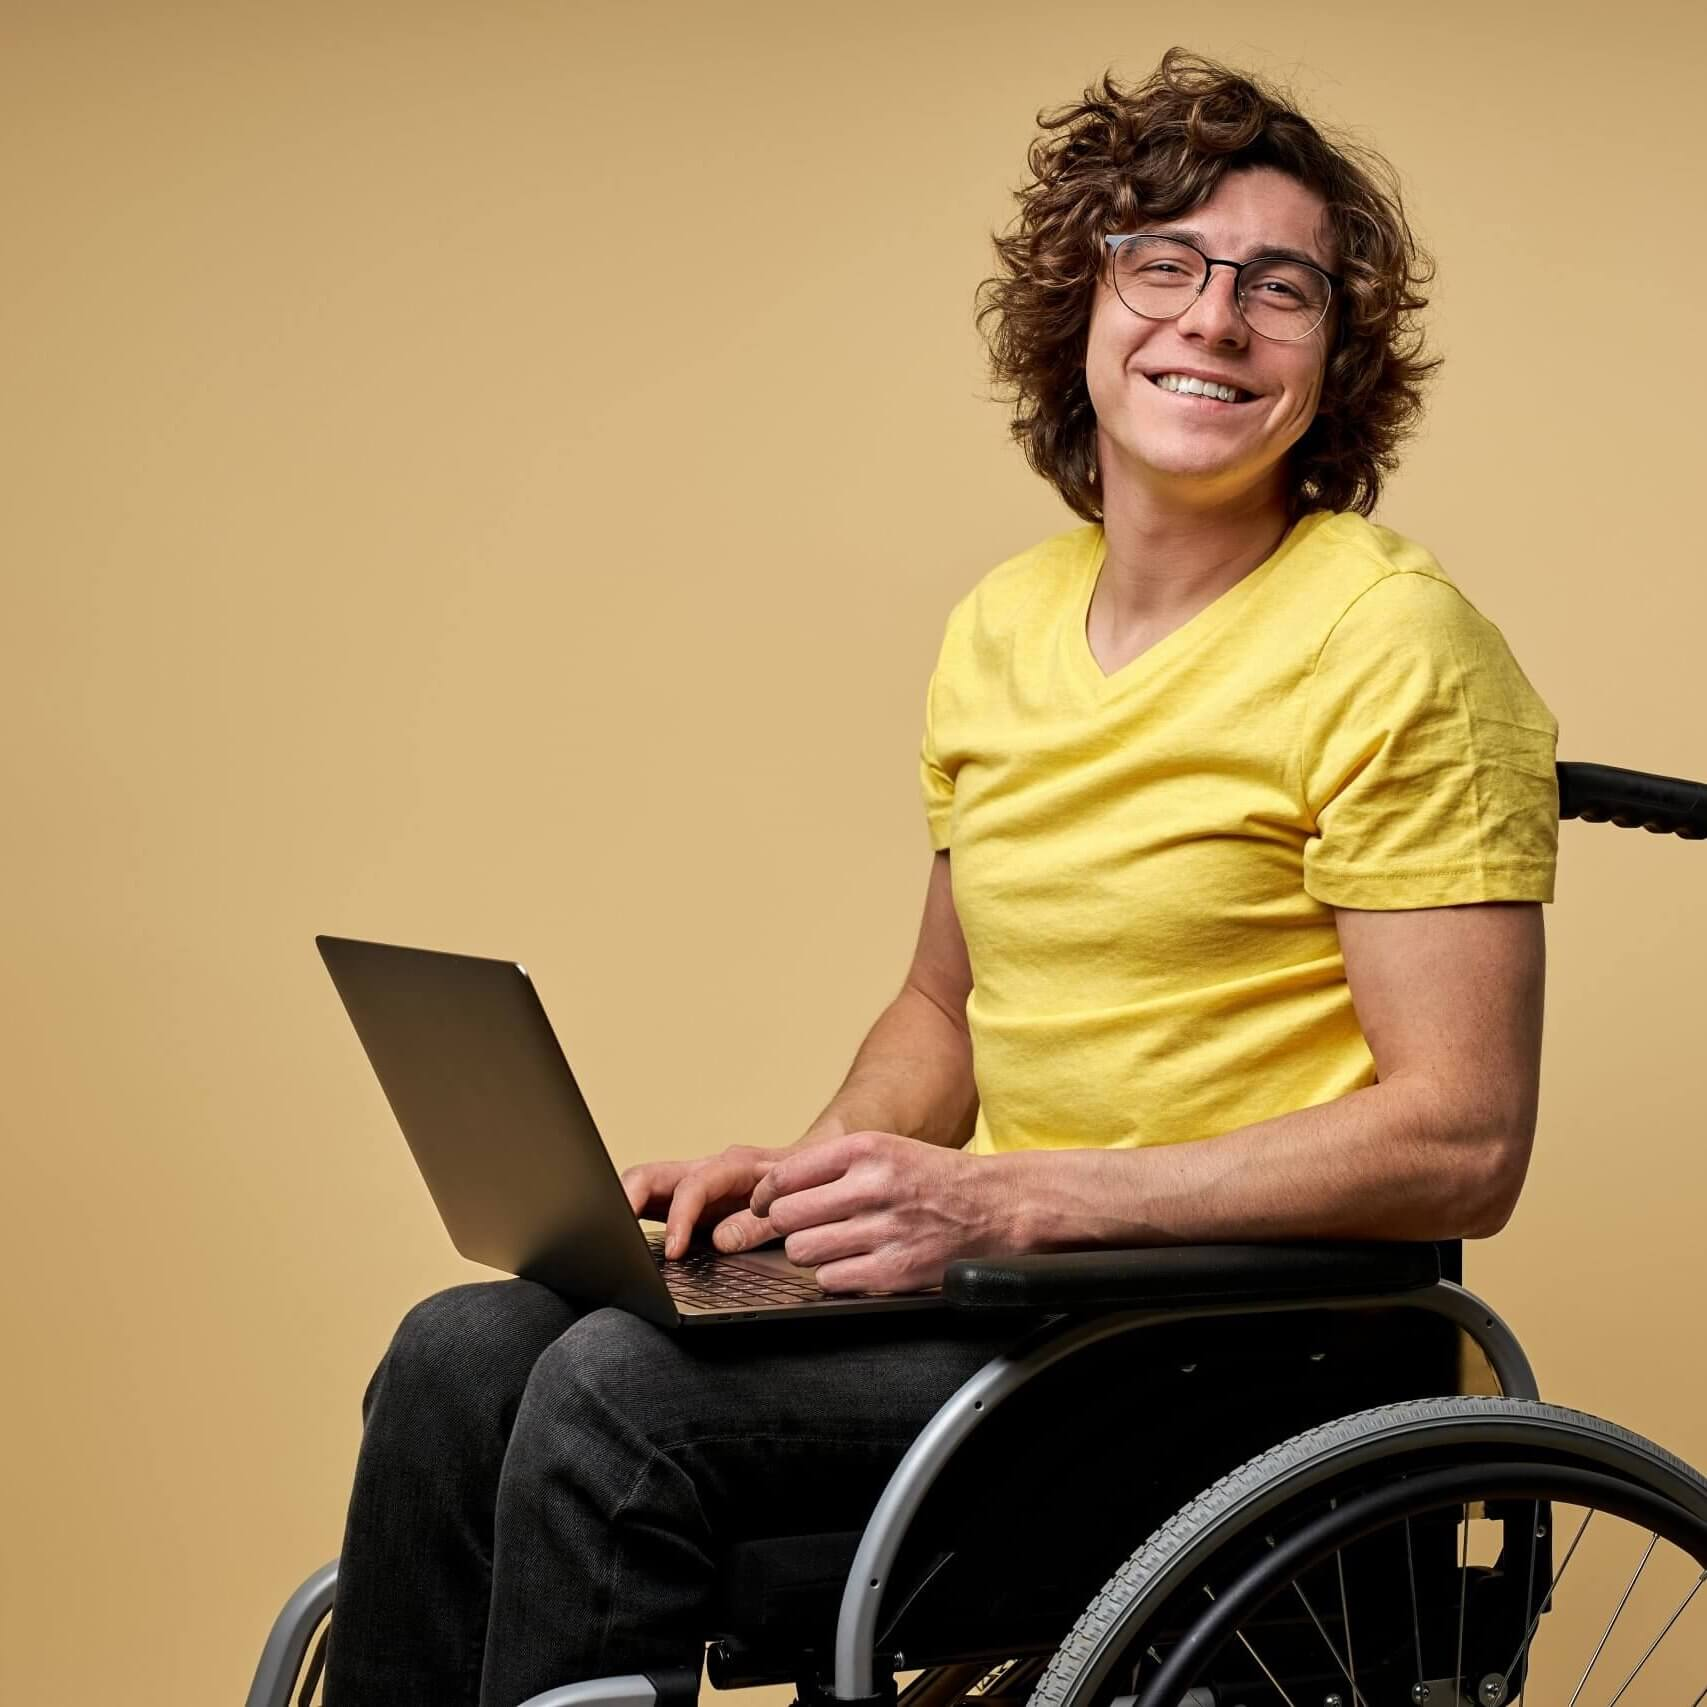 disabled man sits in a wheelchair with laptop, working online. curly young male in casual wear smiles at camera isolated in studio on beige background